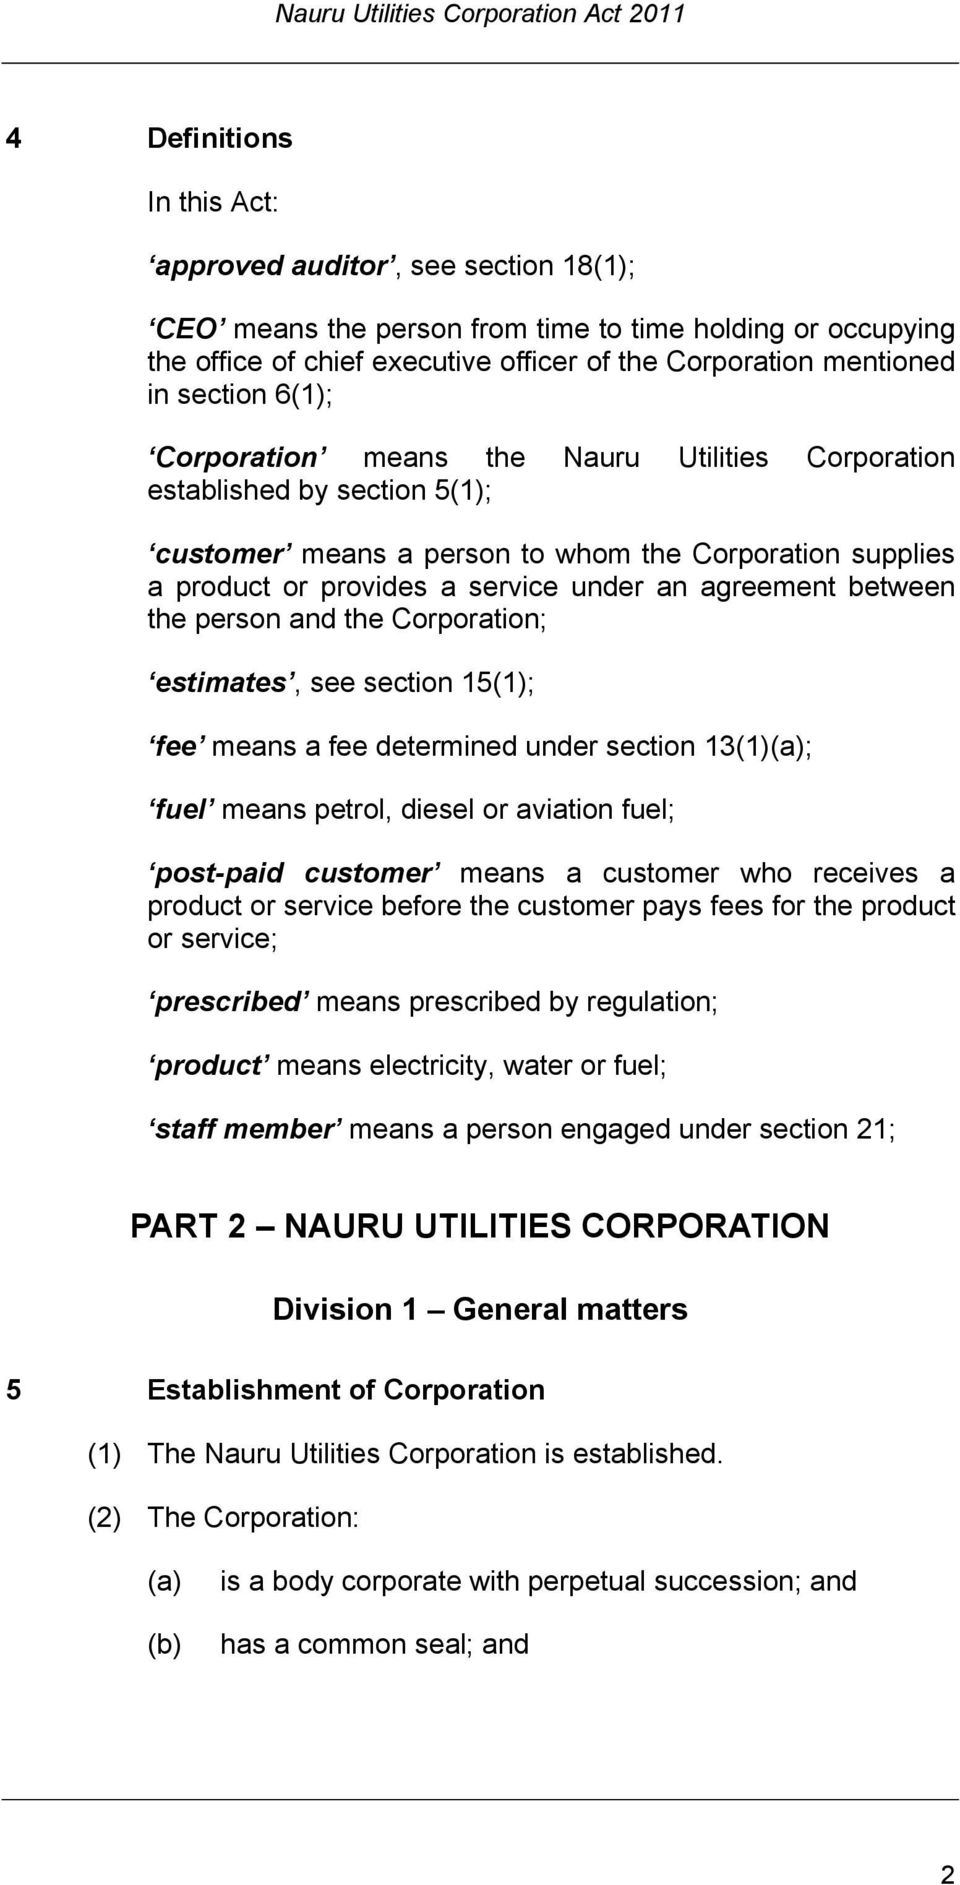 agreement between the person and the Corporation; estimates, see section 15(1); fee means a fee determined under section 13(1); fuel means petrol, diesel or aviation fuel; post-paid customer means a